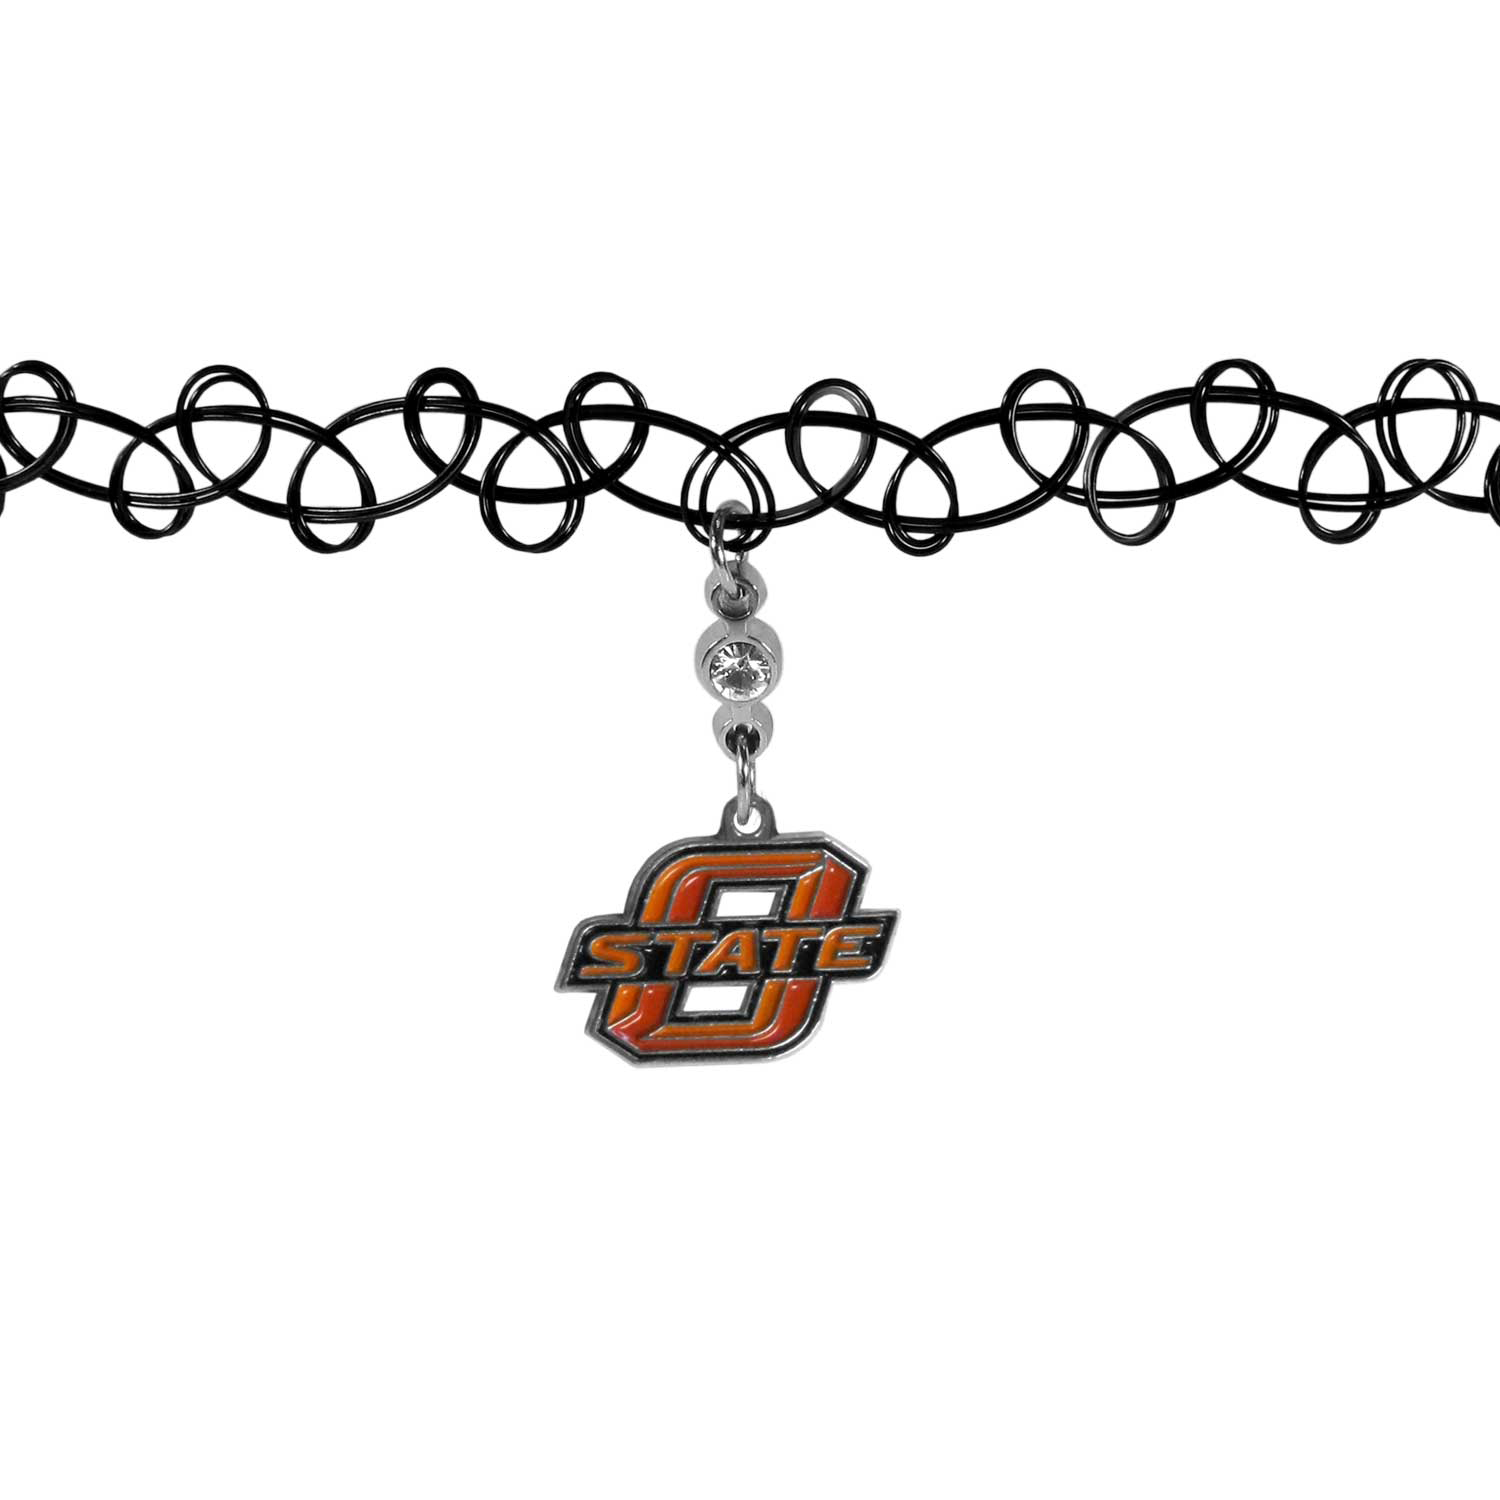 Oklahoma St. Cowboys Knotted Choker - This retro, knotted choker is a cool and unique piece of fan jewelry. The tattoo style choker features a high polish Oklahoma St. Cowboys charm with rhinestone accents.